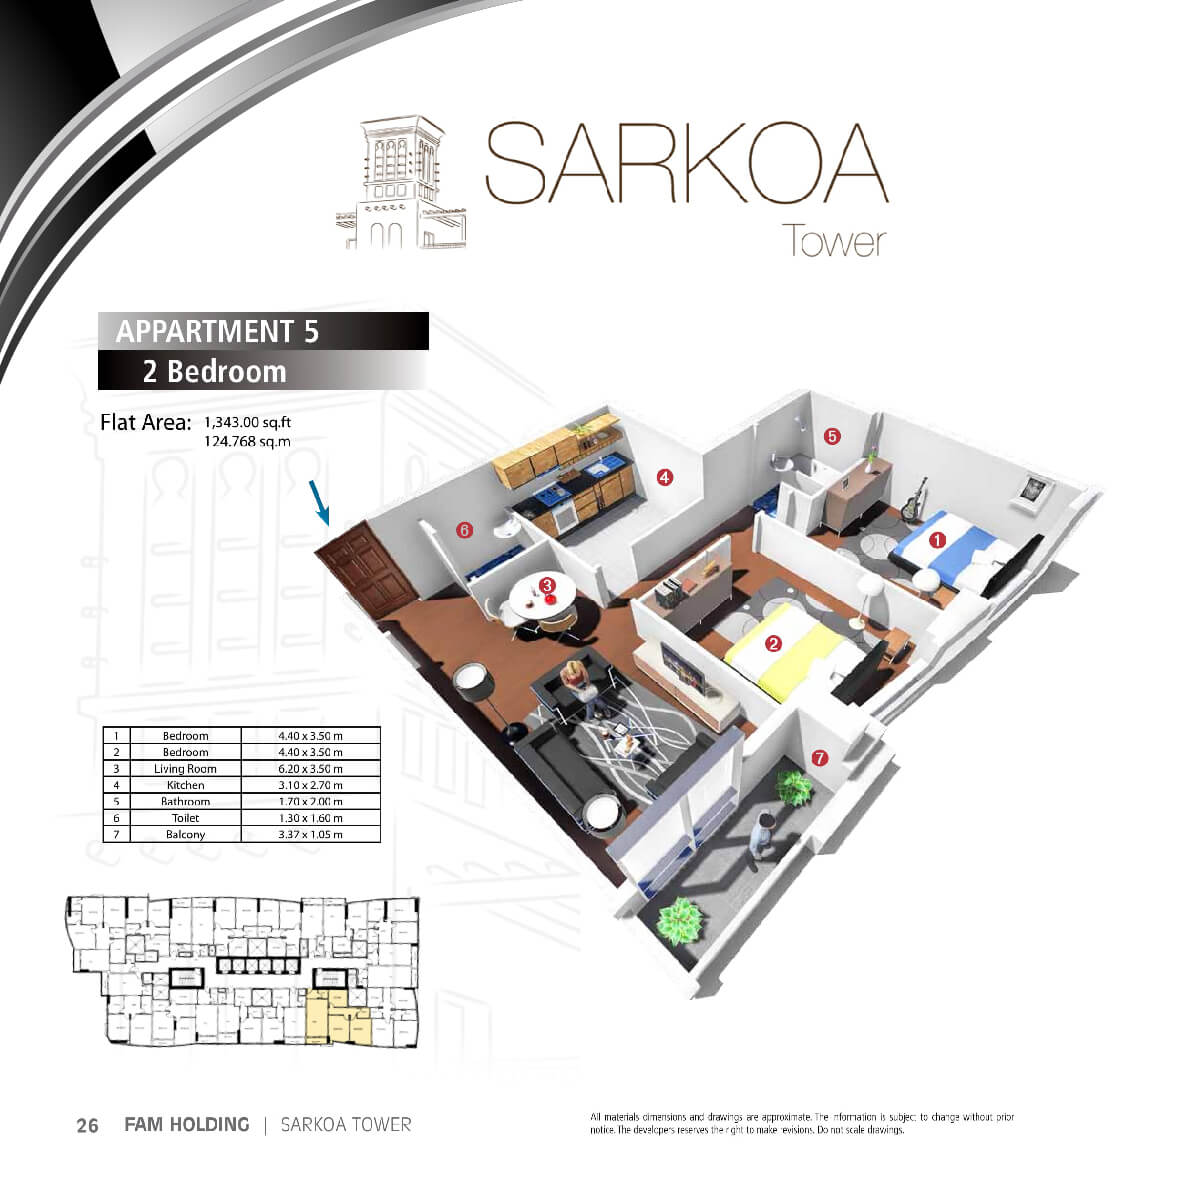 Planning of the apartment 2BR, 1343 in Sarkoa Tower, Sharjah